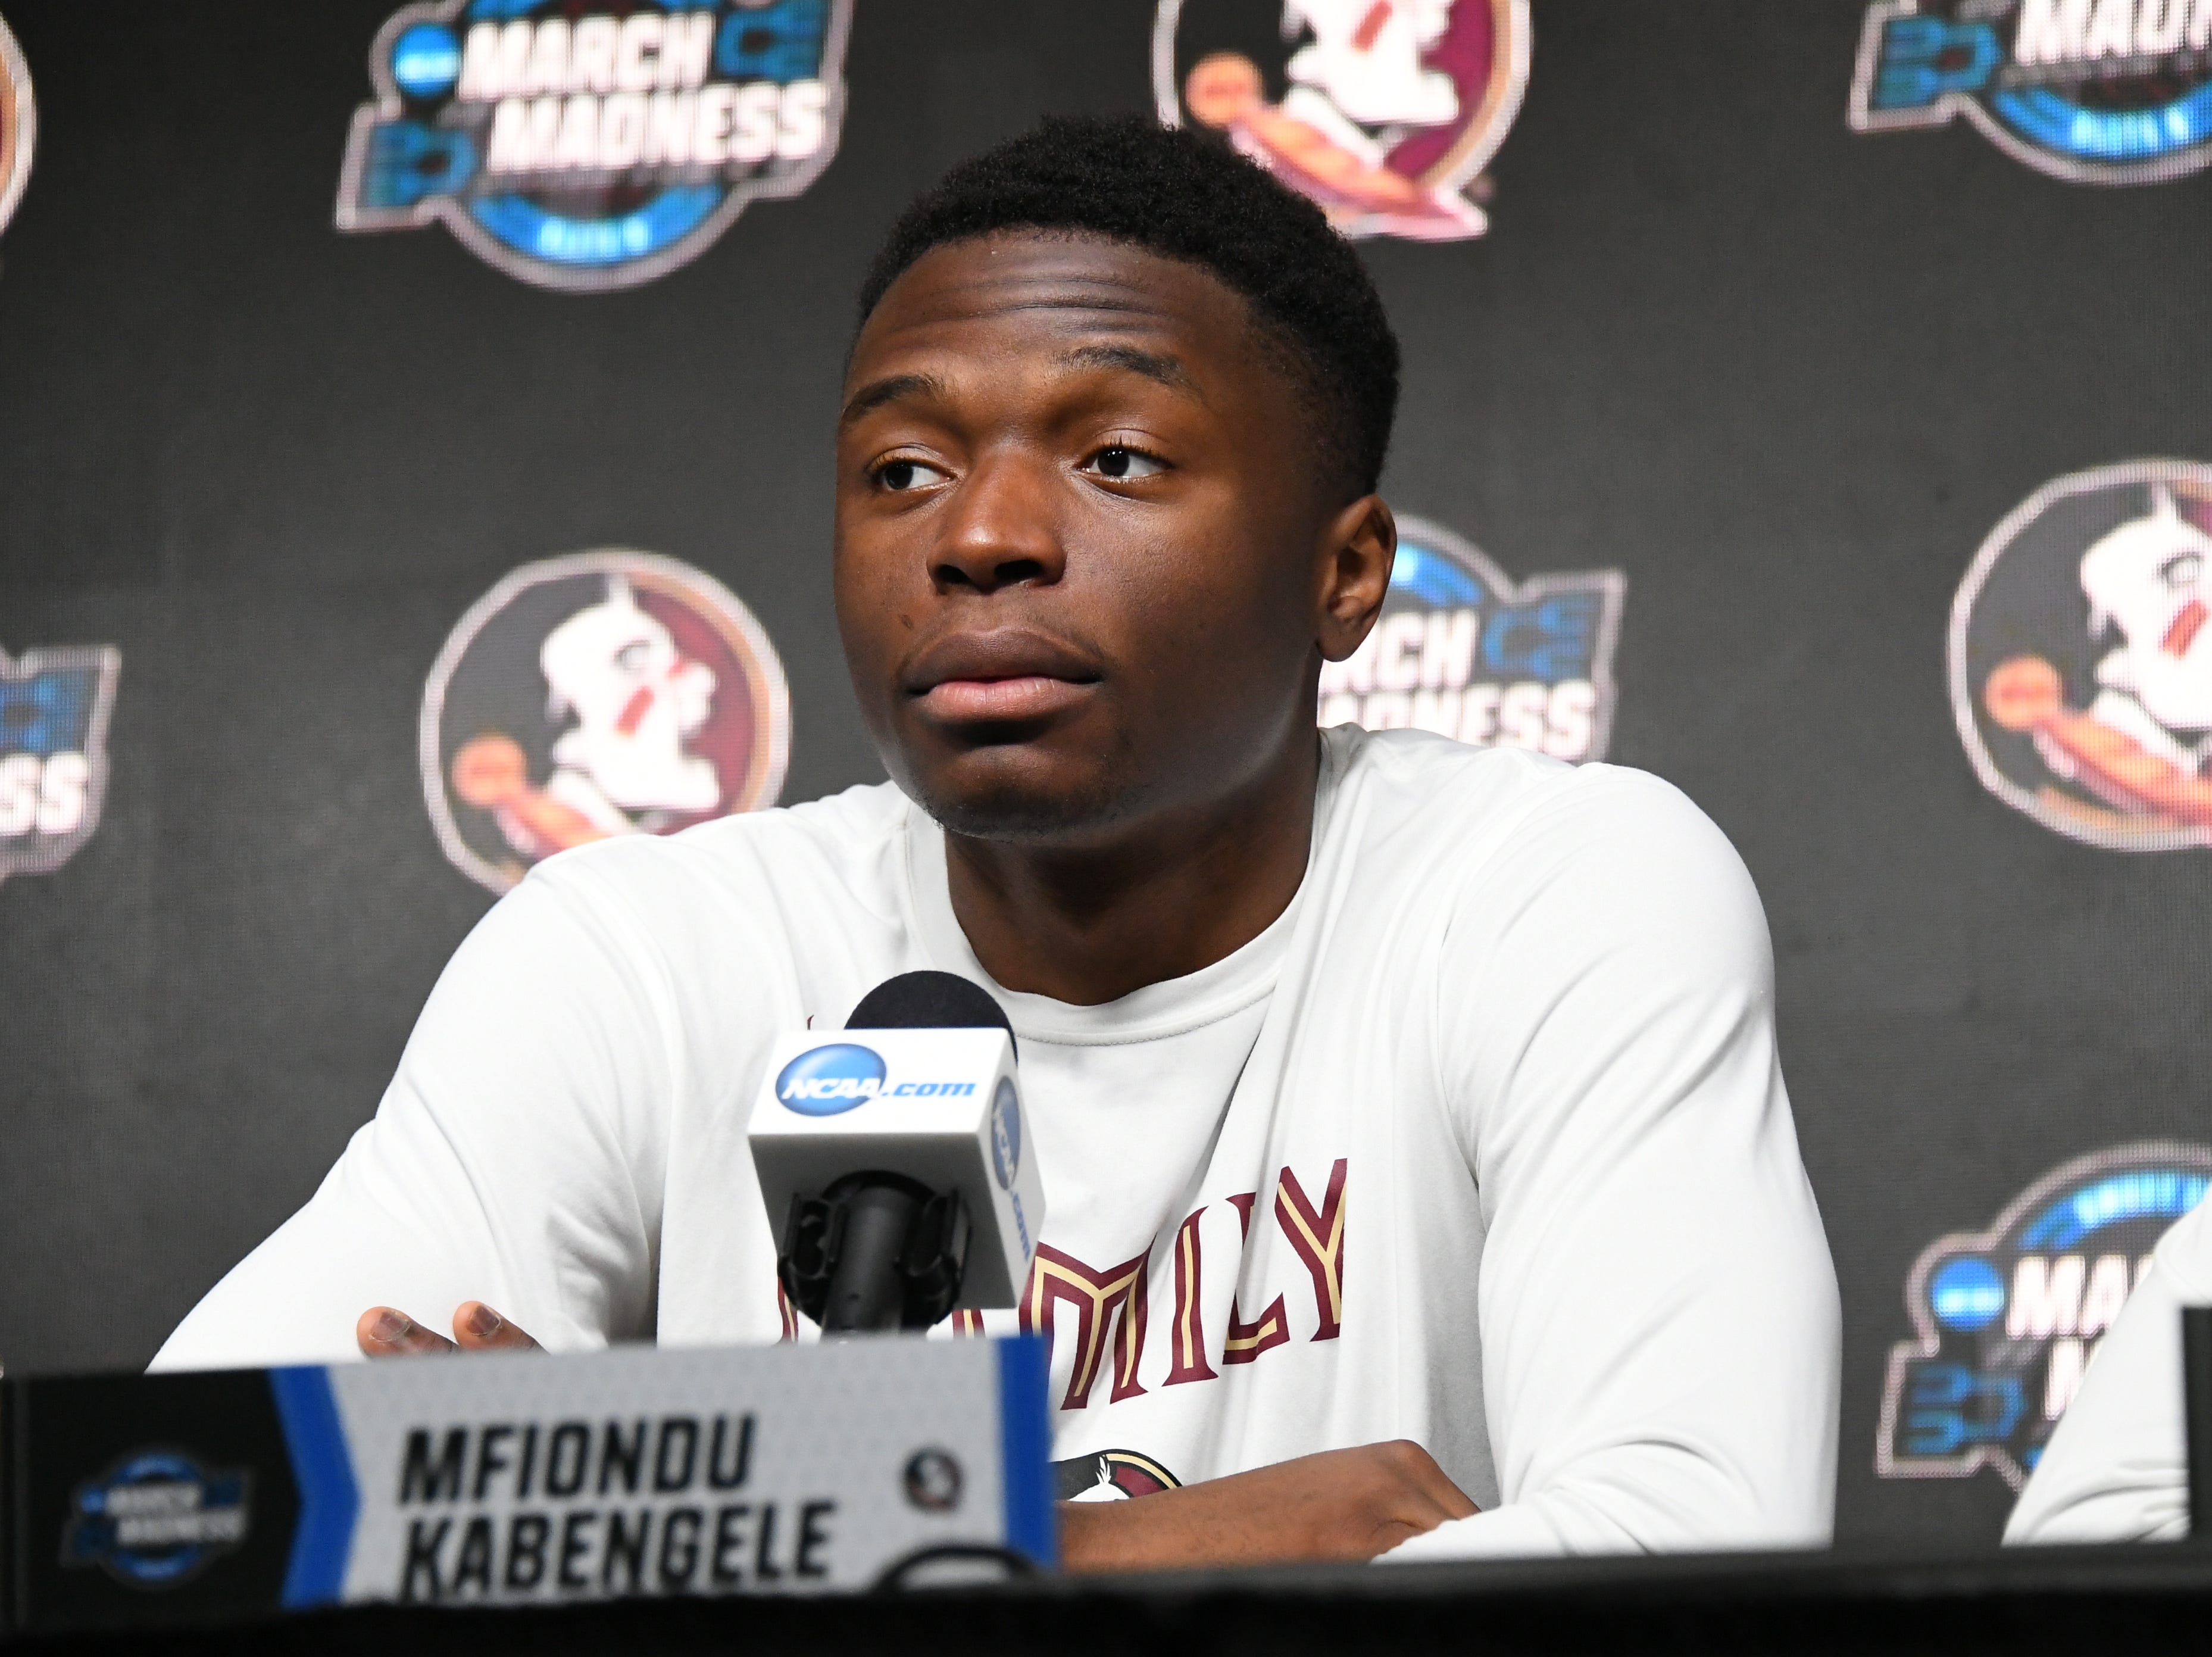 March 27, 2019; Anaheim, CA, USA; Florida State Seminoles forward Mfiondu Kabengele (25) speaks with media during practice for the west regional of the 2019 NCAA Tournament at Honda Center. Mandatory Credit: Richard Mackson-USA TODAY Sports